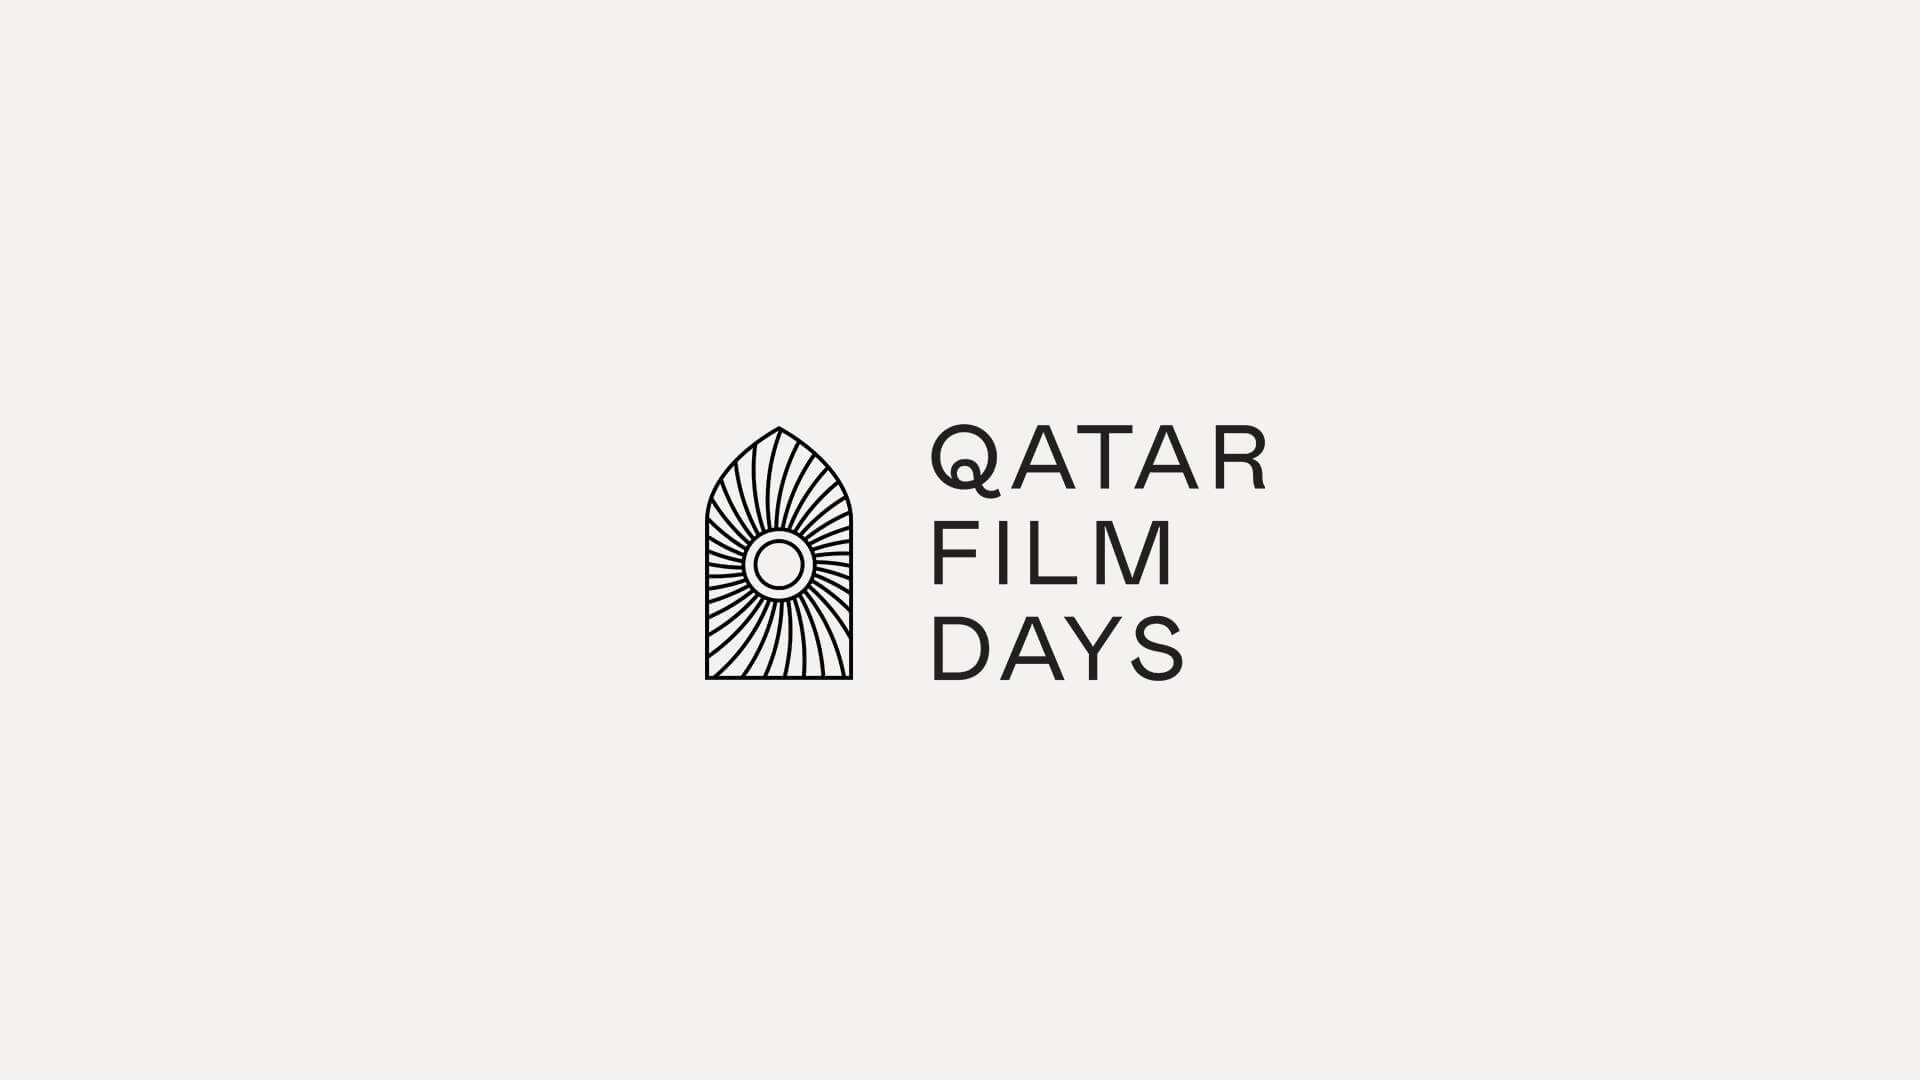 Qatar Film Days 2021